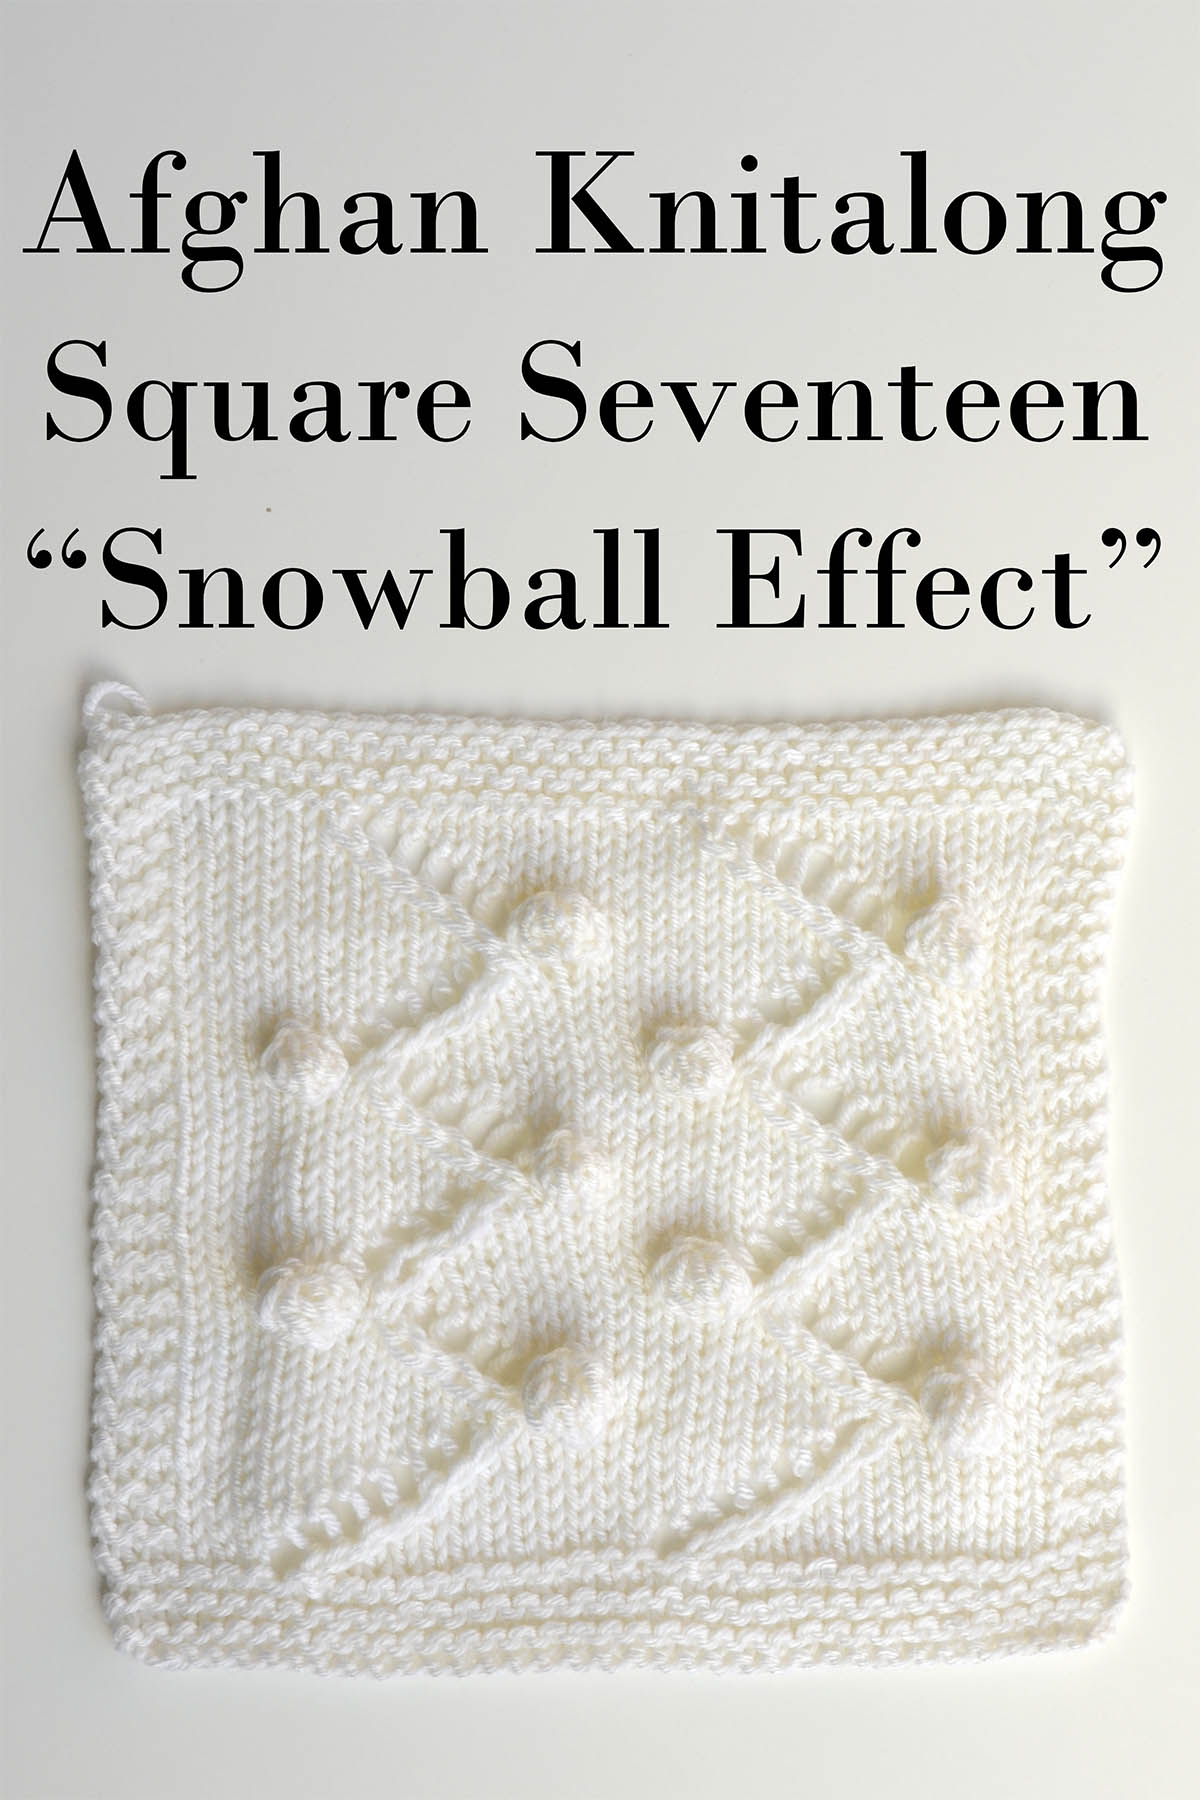 17 Snowball Effect with title blog